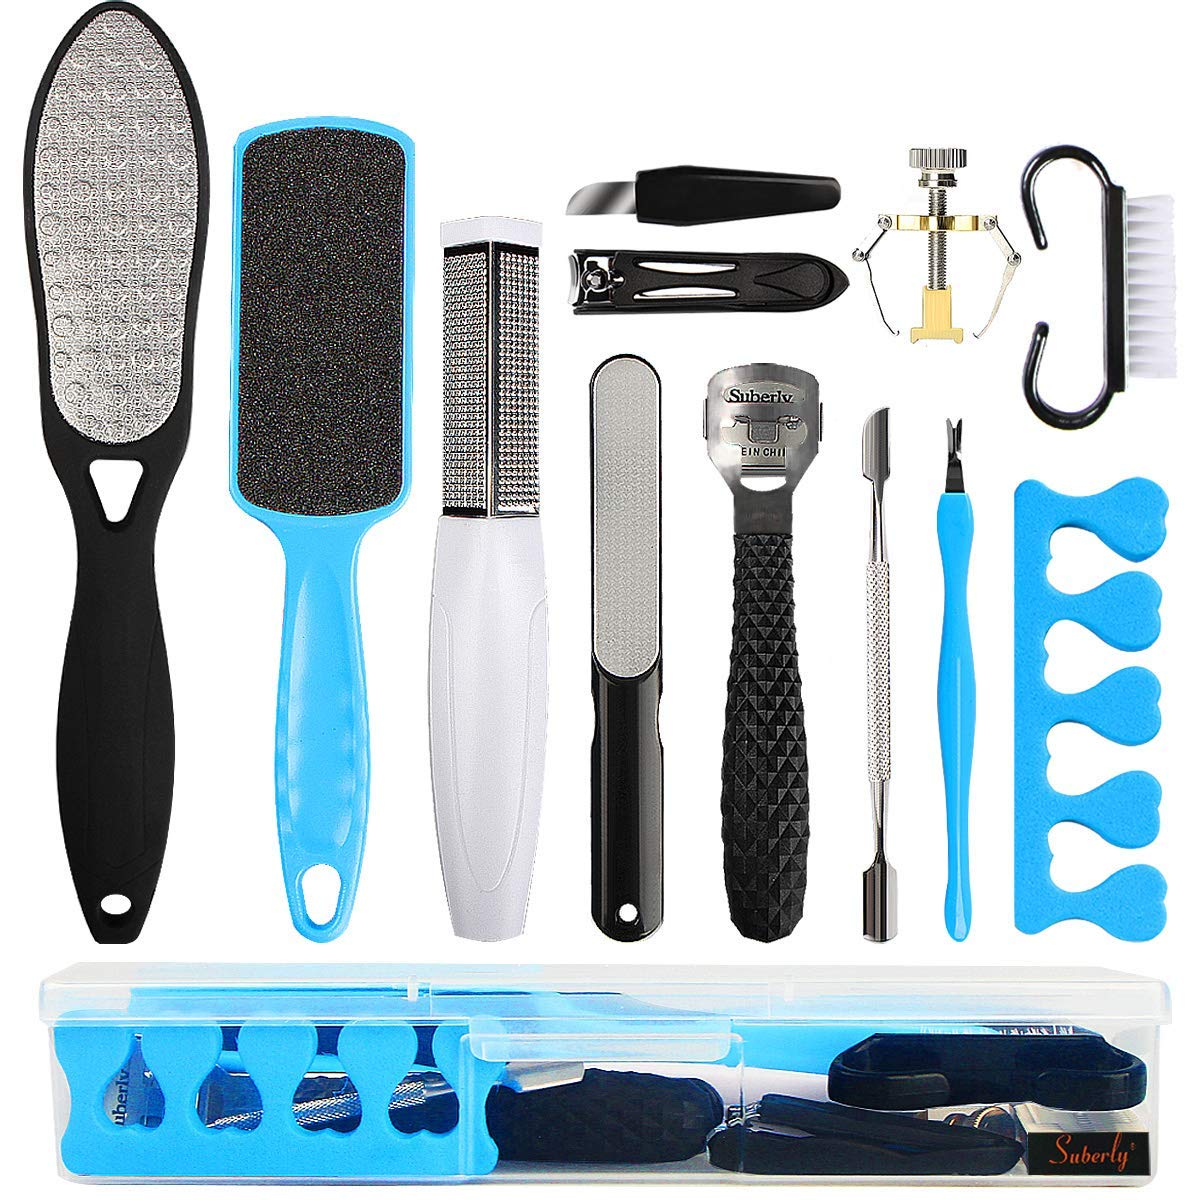 Professional Pedicure Kit Foot Files Set Tools Double Sided Files Exfoliating Prevent Dead Skin Foot Skin Care Tool Set Salon Pedicure Kit Washable Effectively 13 in 1